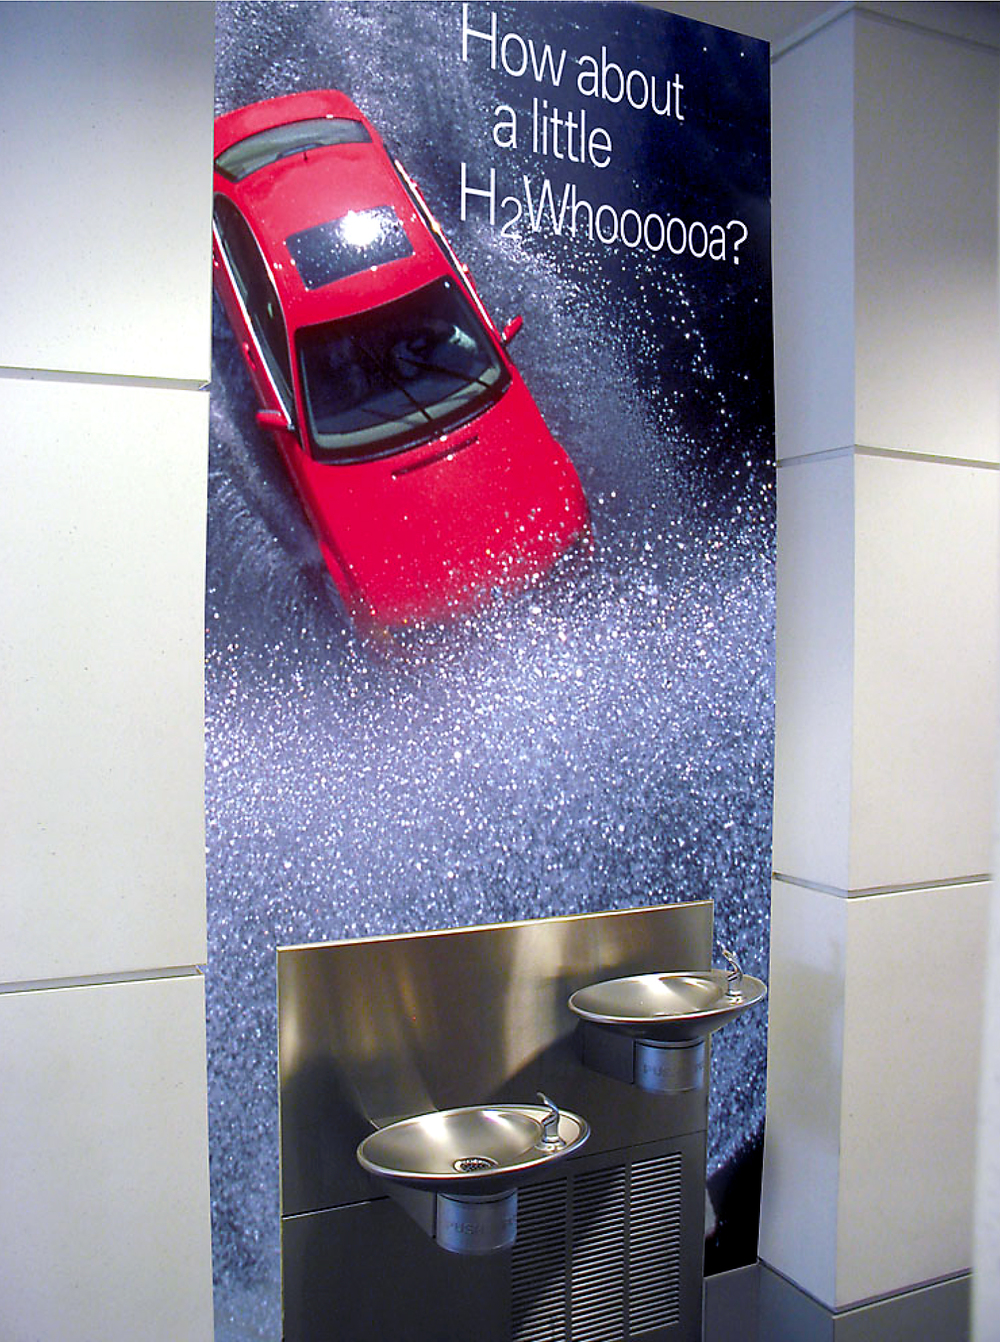 BMW_PerfCtr_WaterFountain.jpg